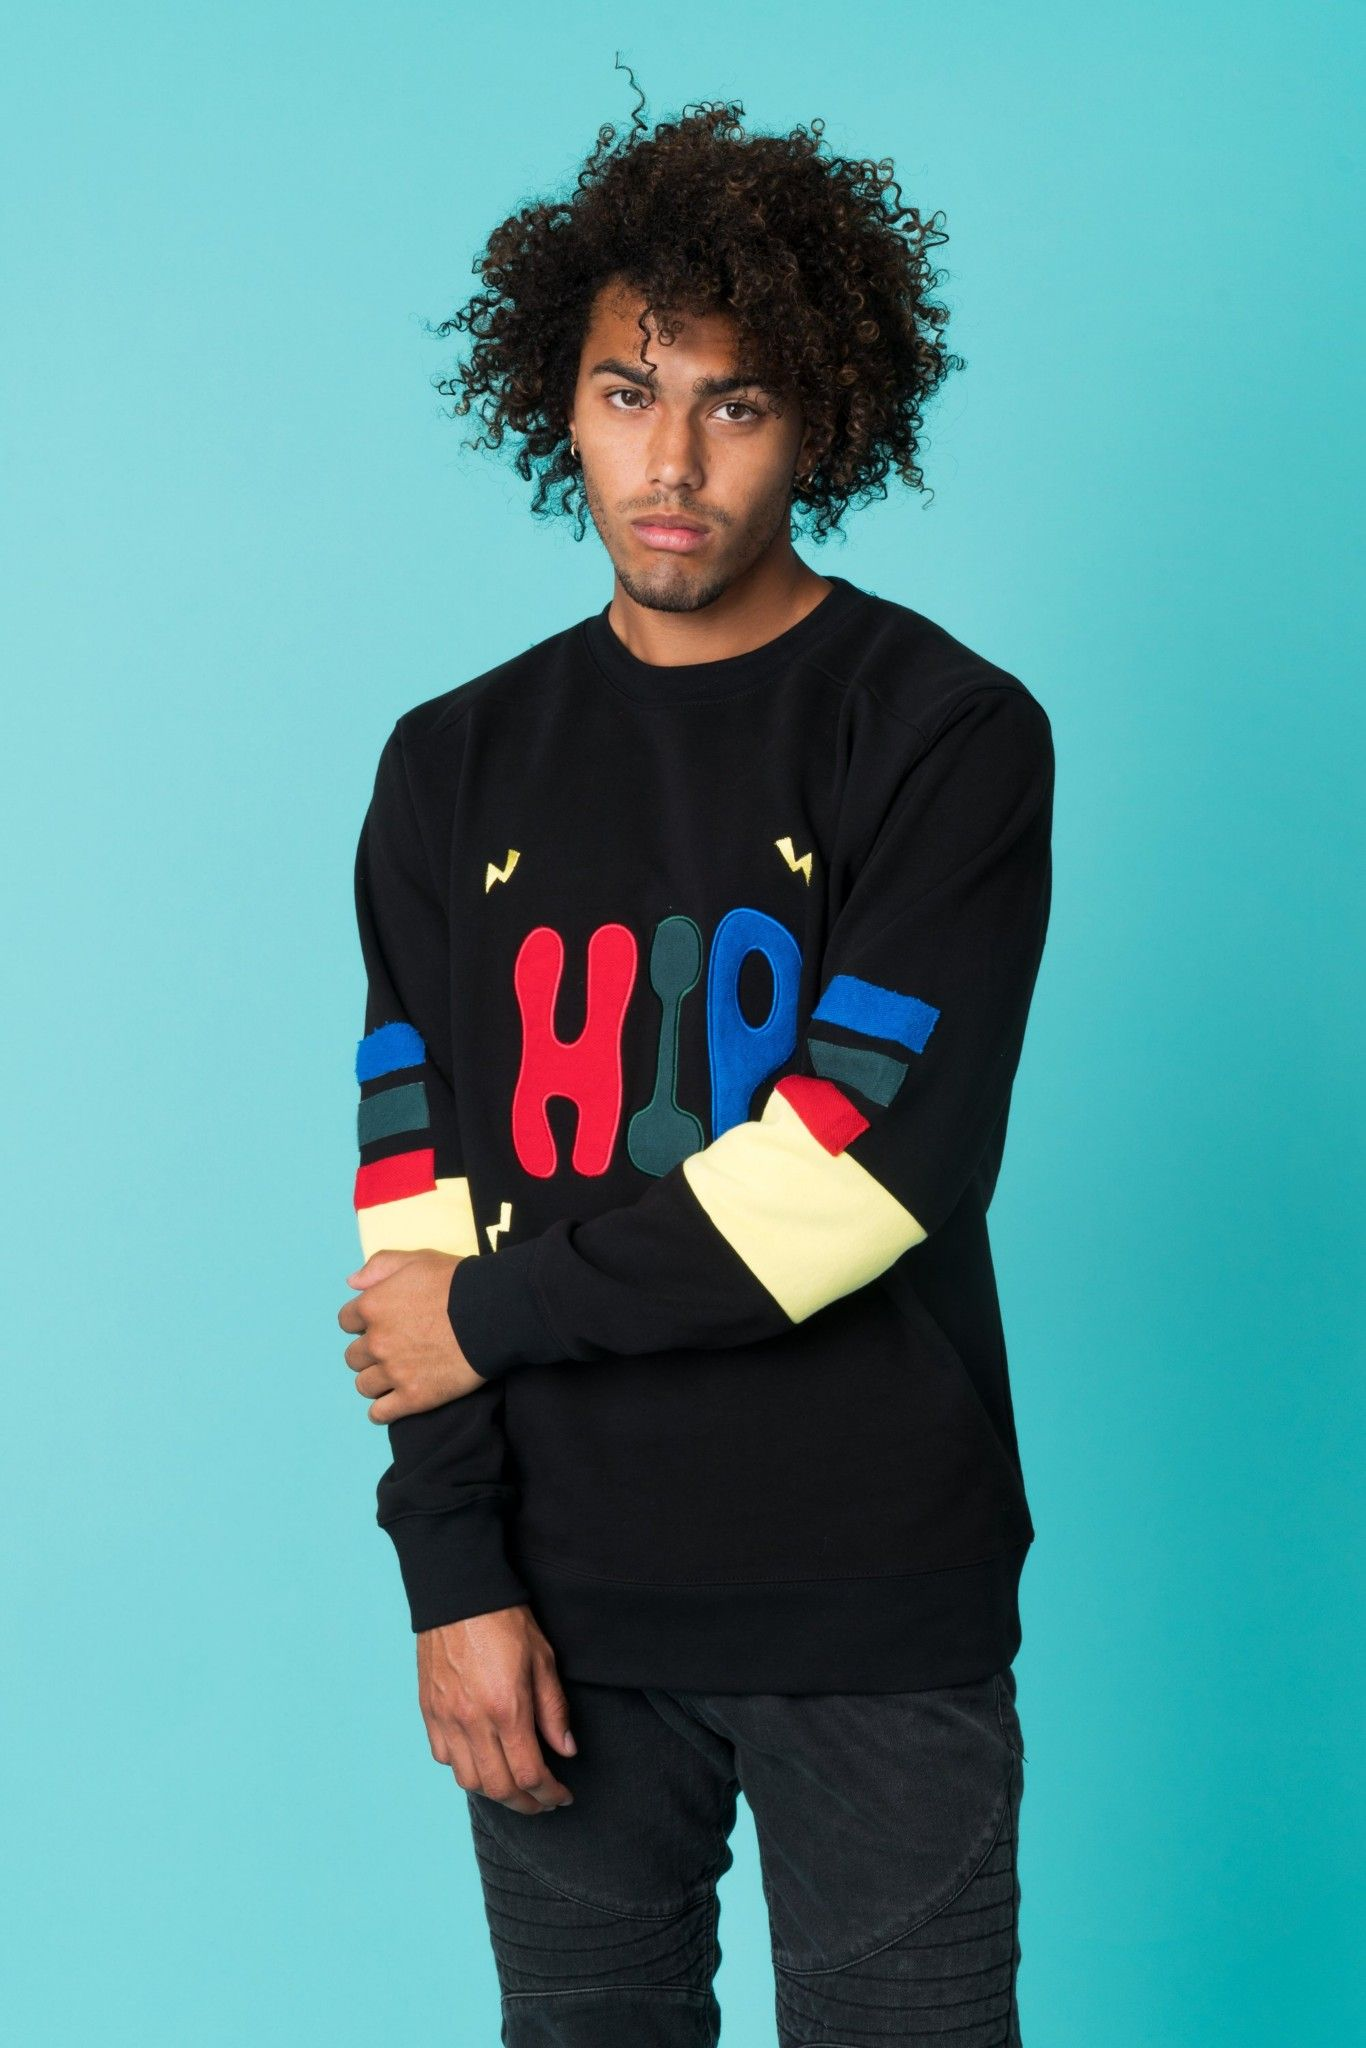 af692b17f98 Teddy Fresh - Hip Hop Sweater